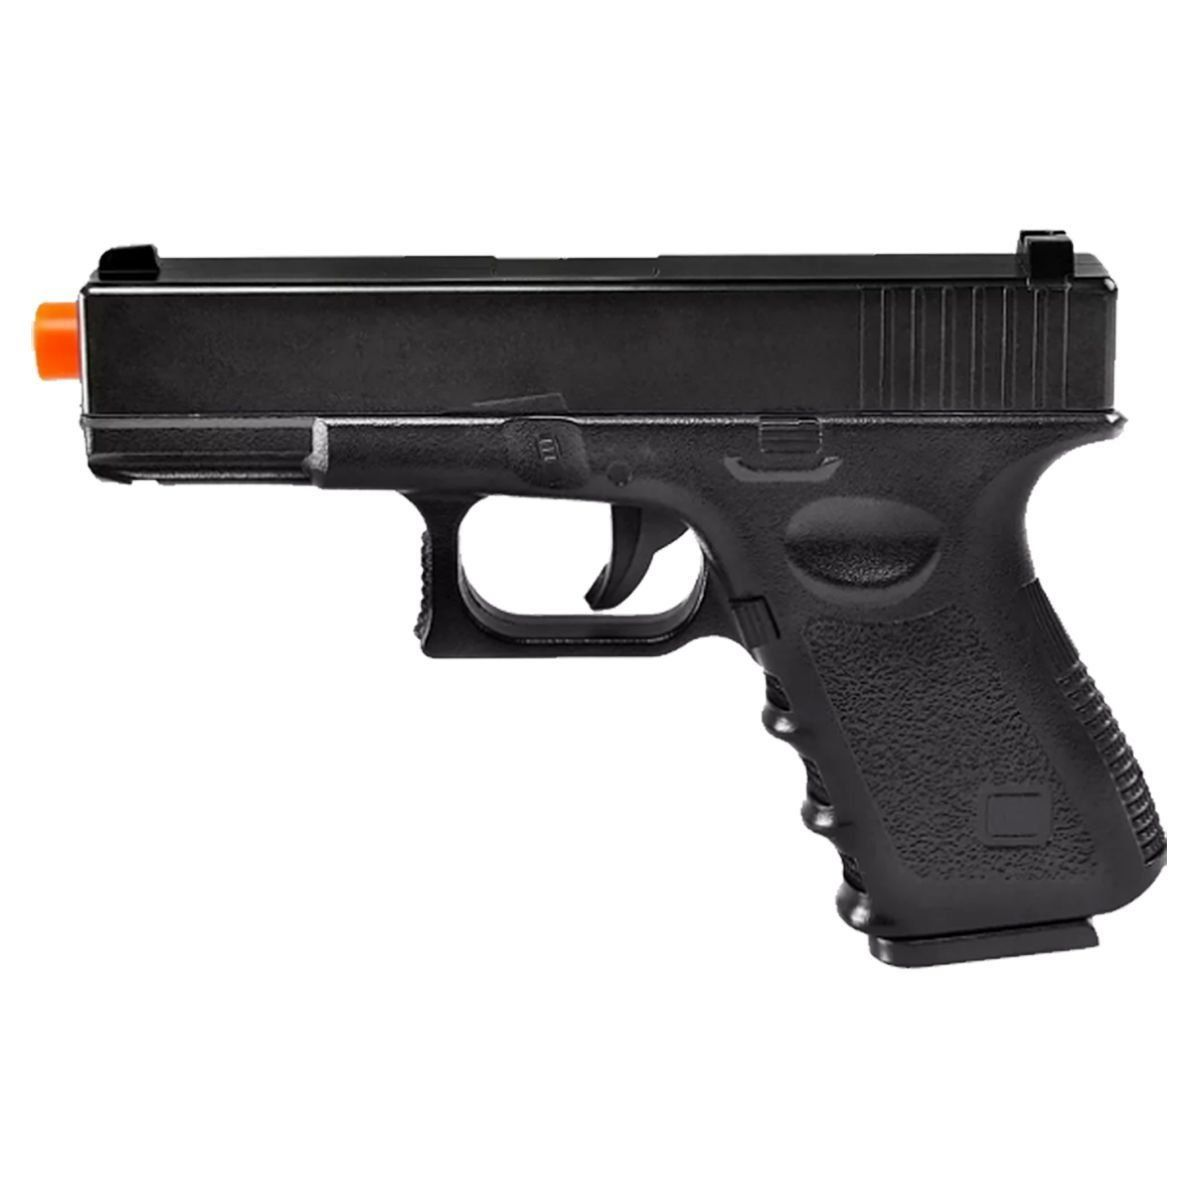 Pistola Airsoft Glock G15 Full Metal Mola Mostruário + Coldre